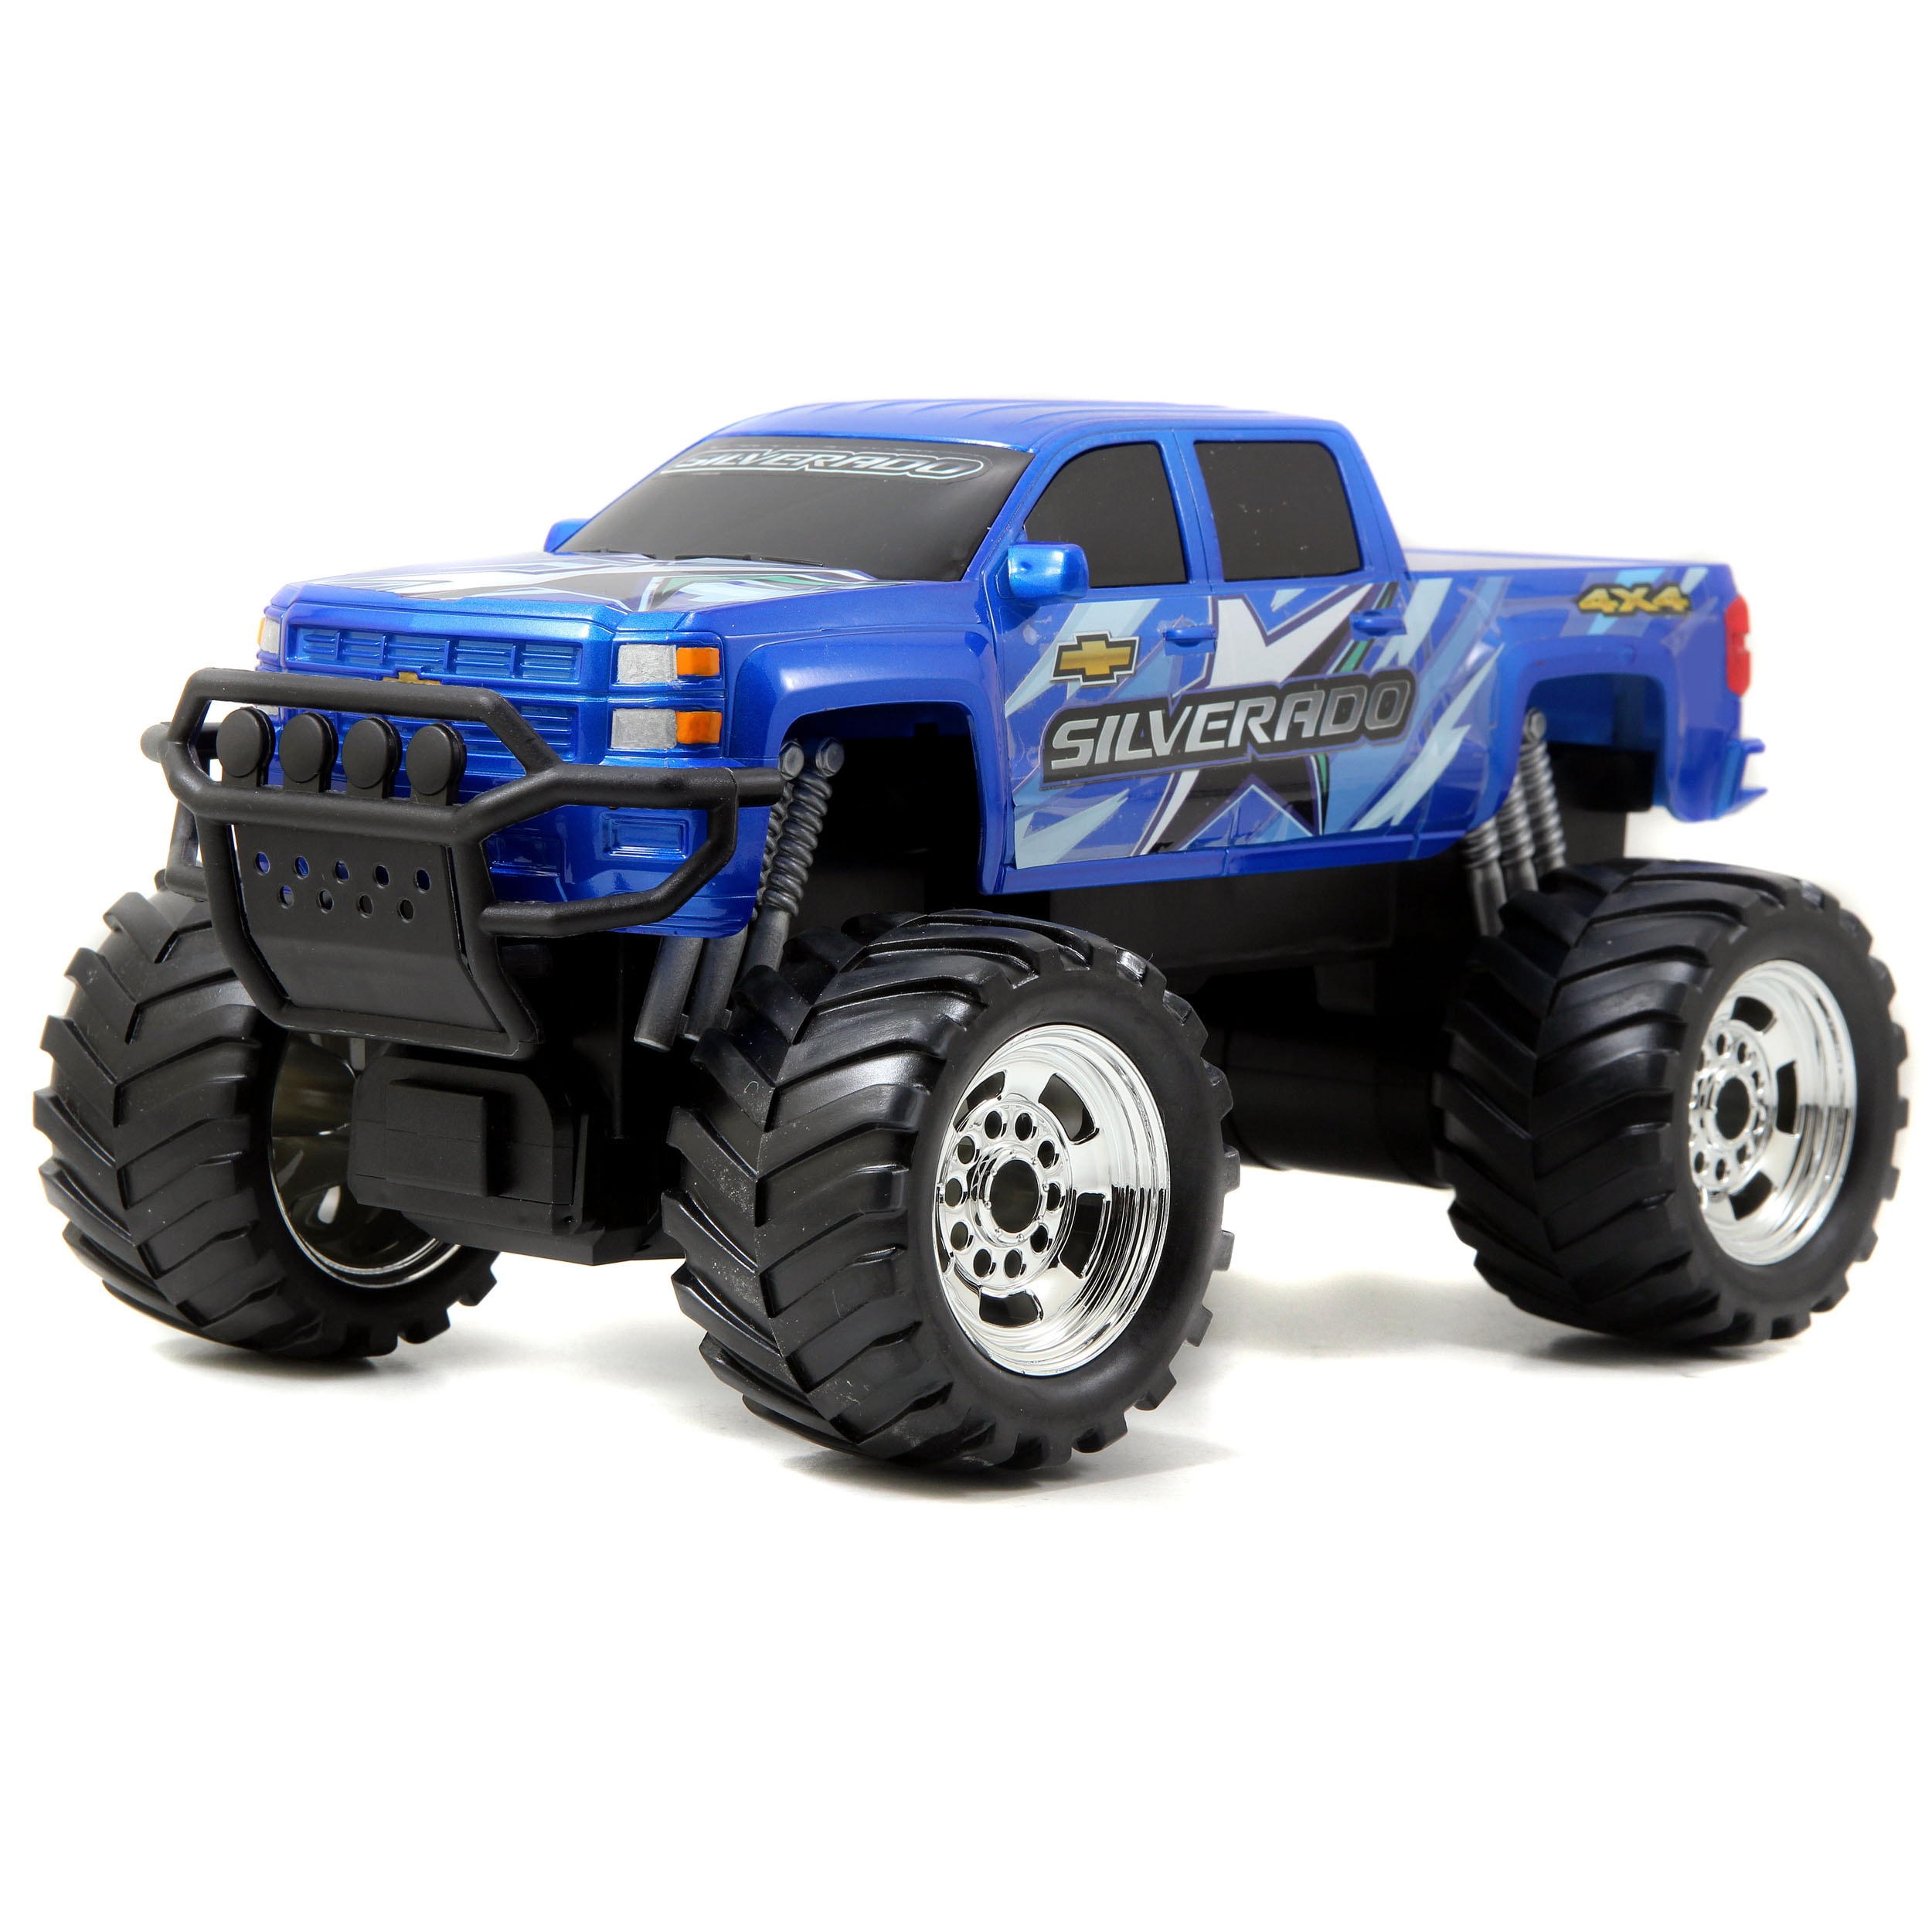 Jada Toys 2012 Chevy Silverado 1:16 Remote Control Truck at Sears.com